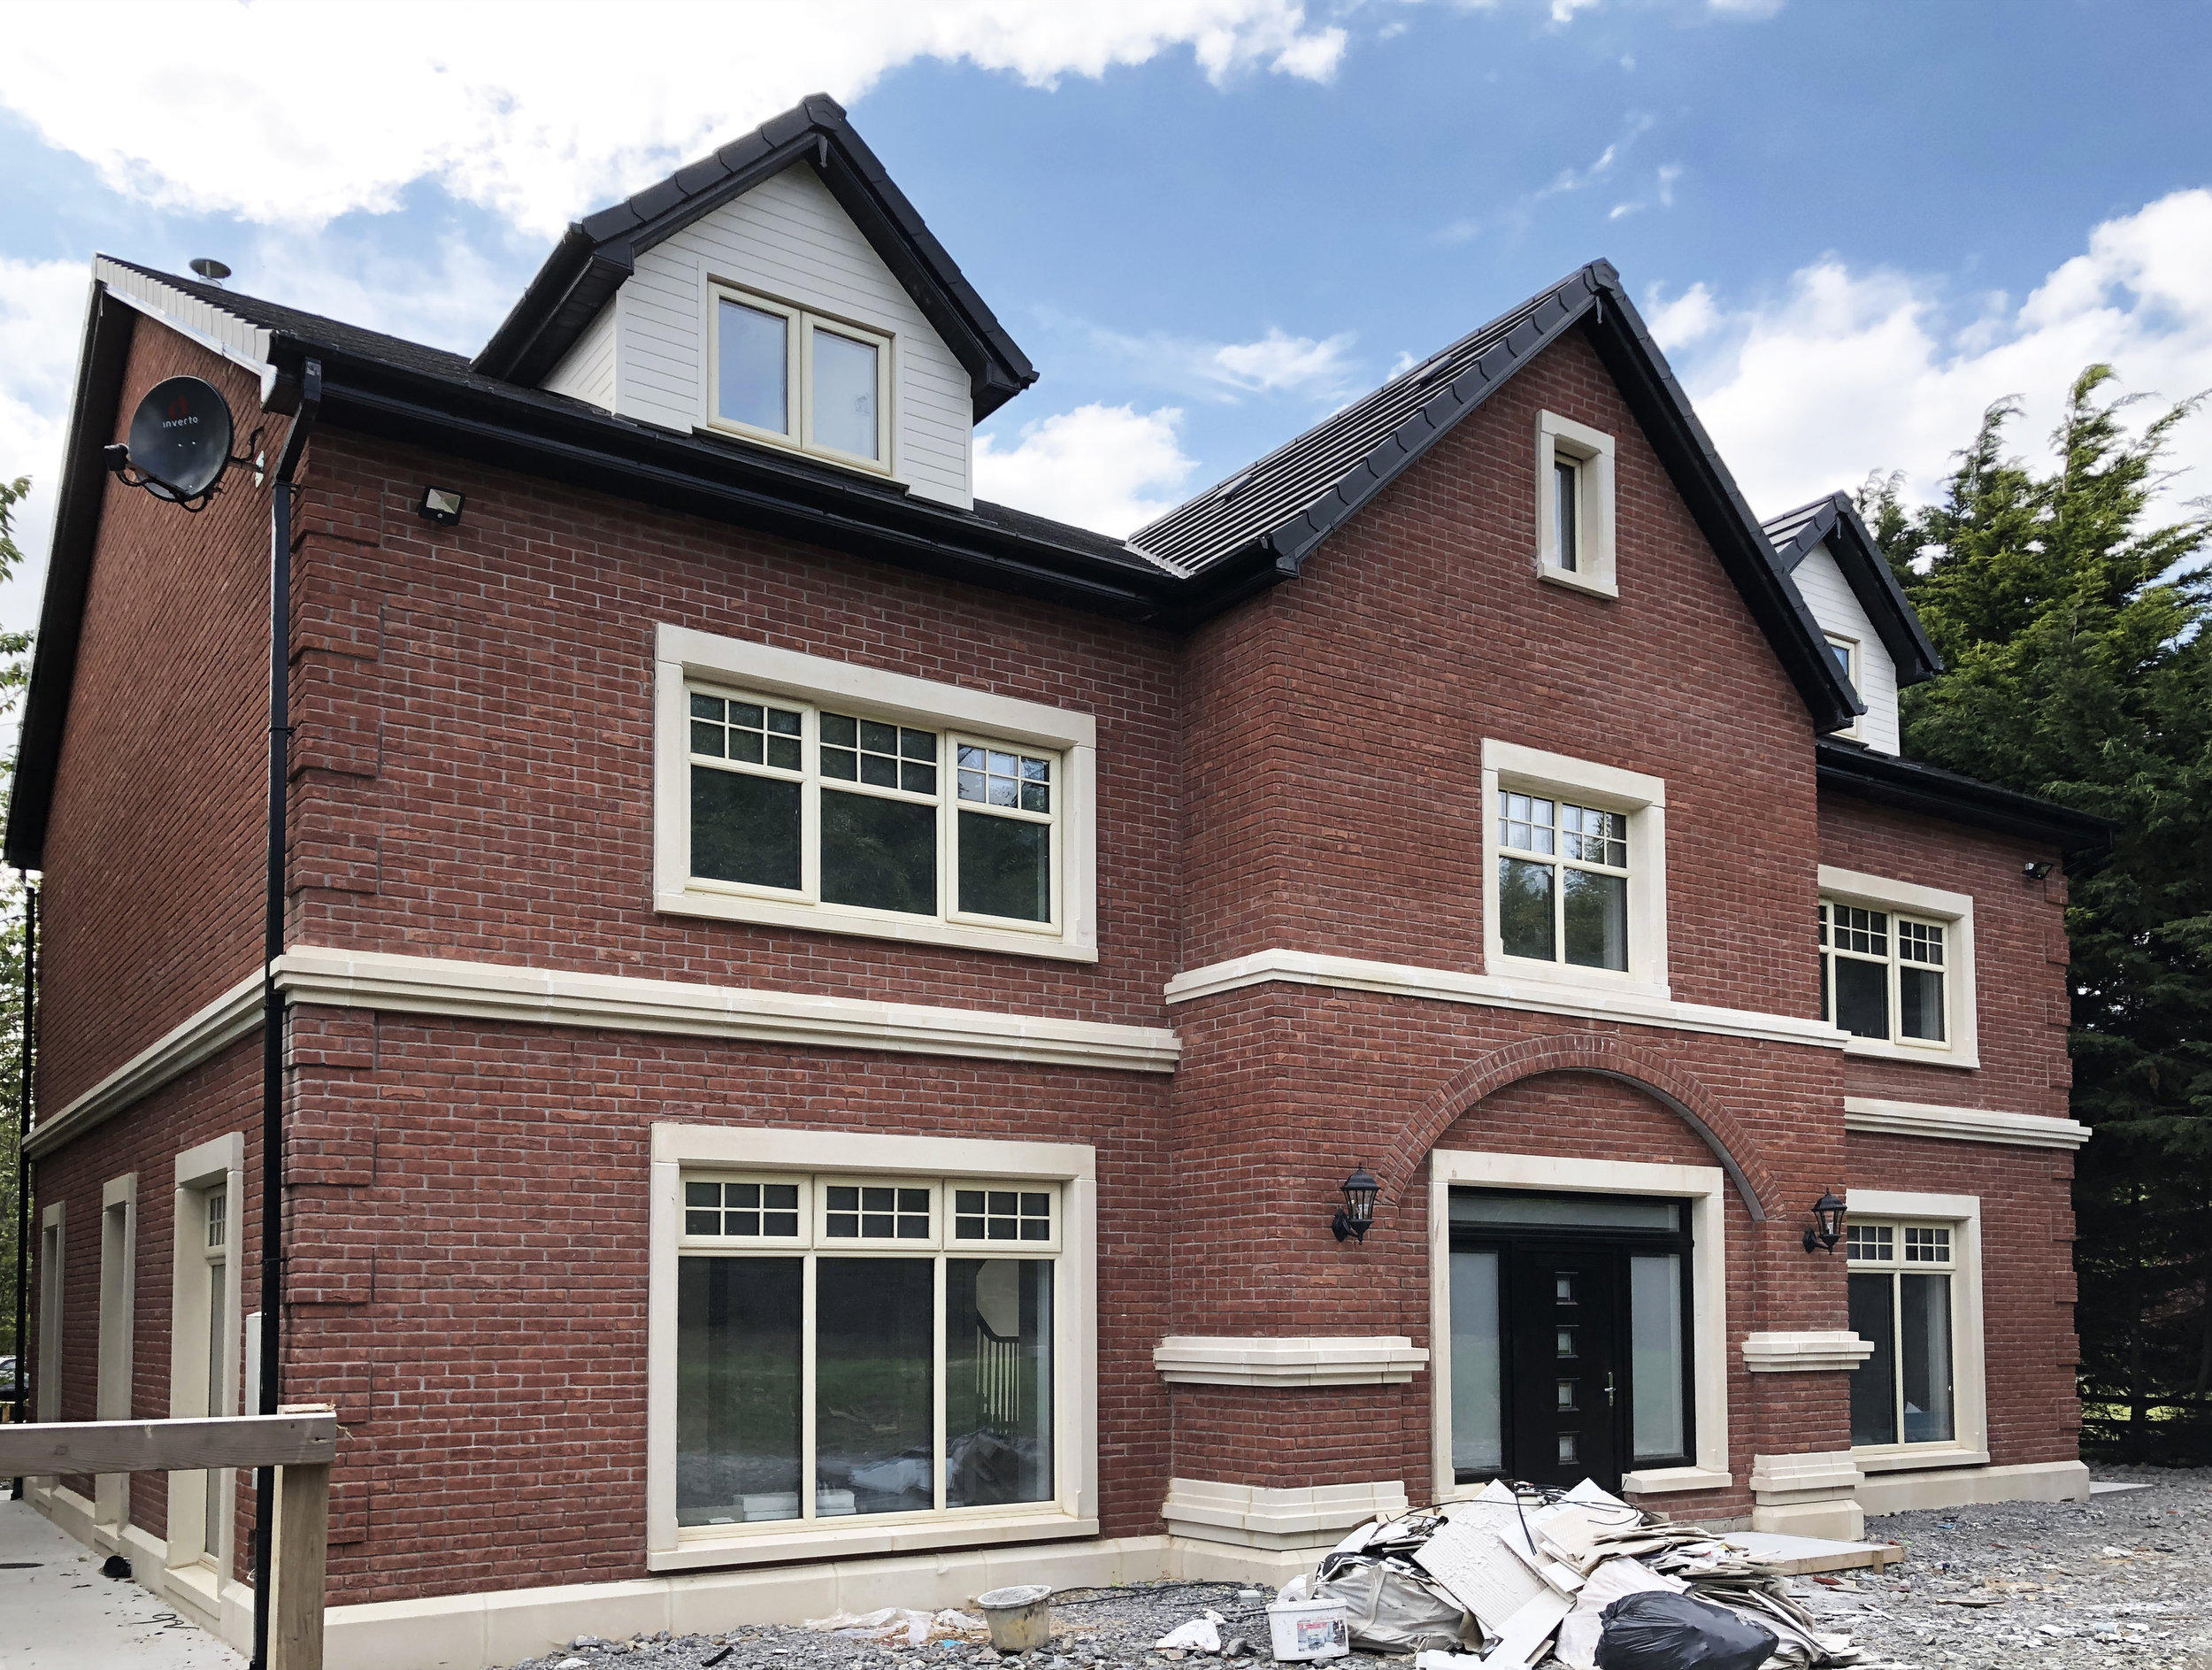 Work in progress- one of our recent housing projects.